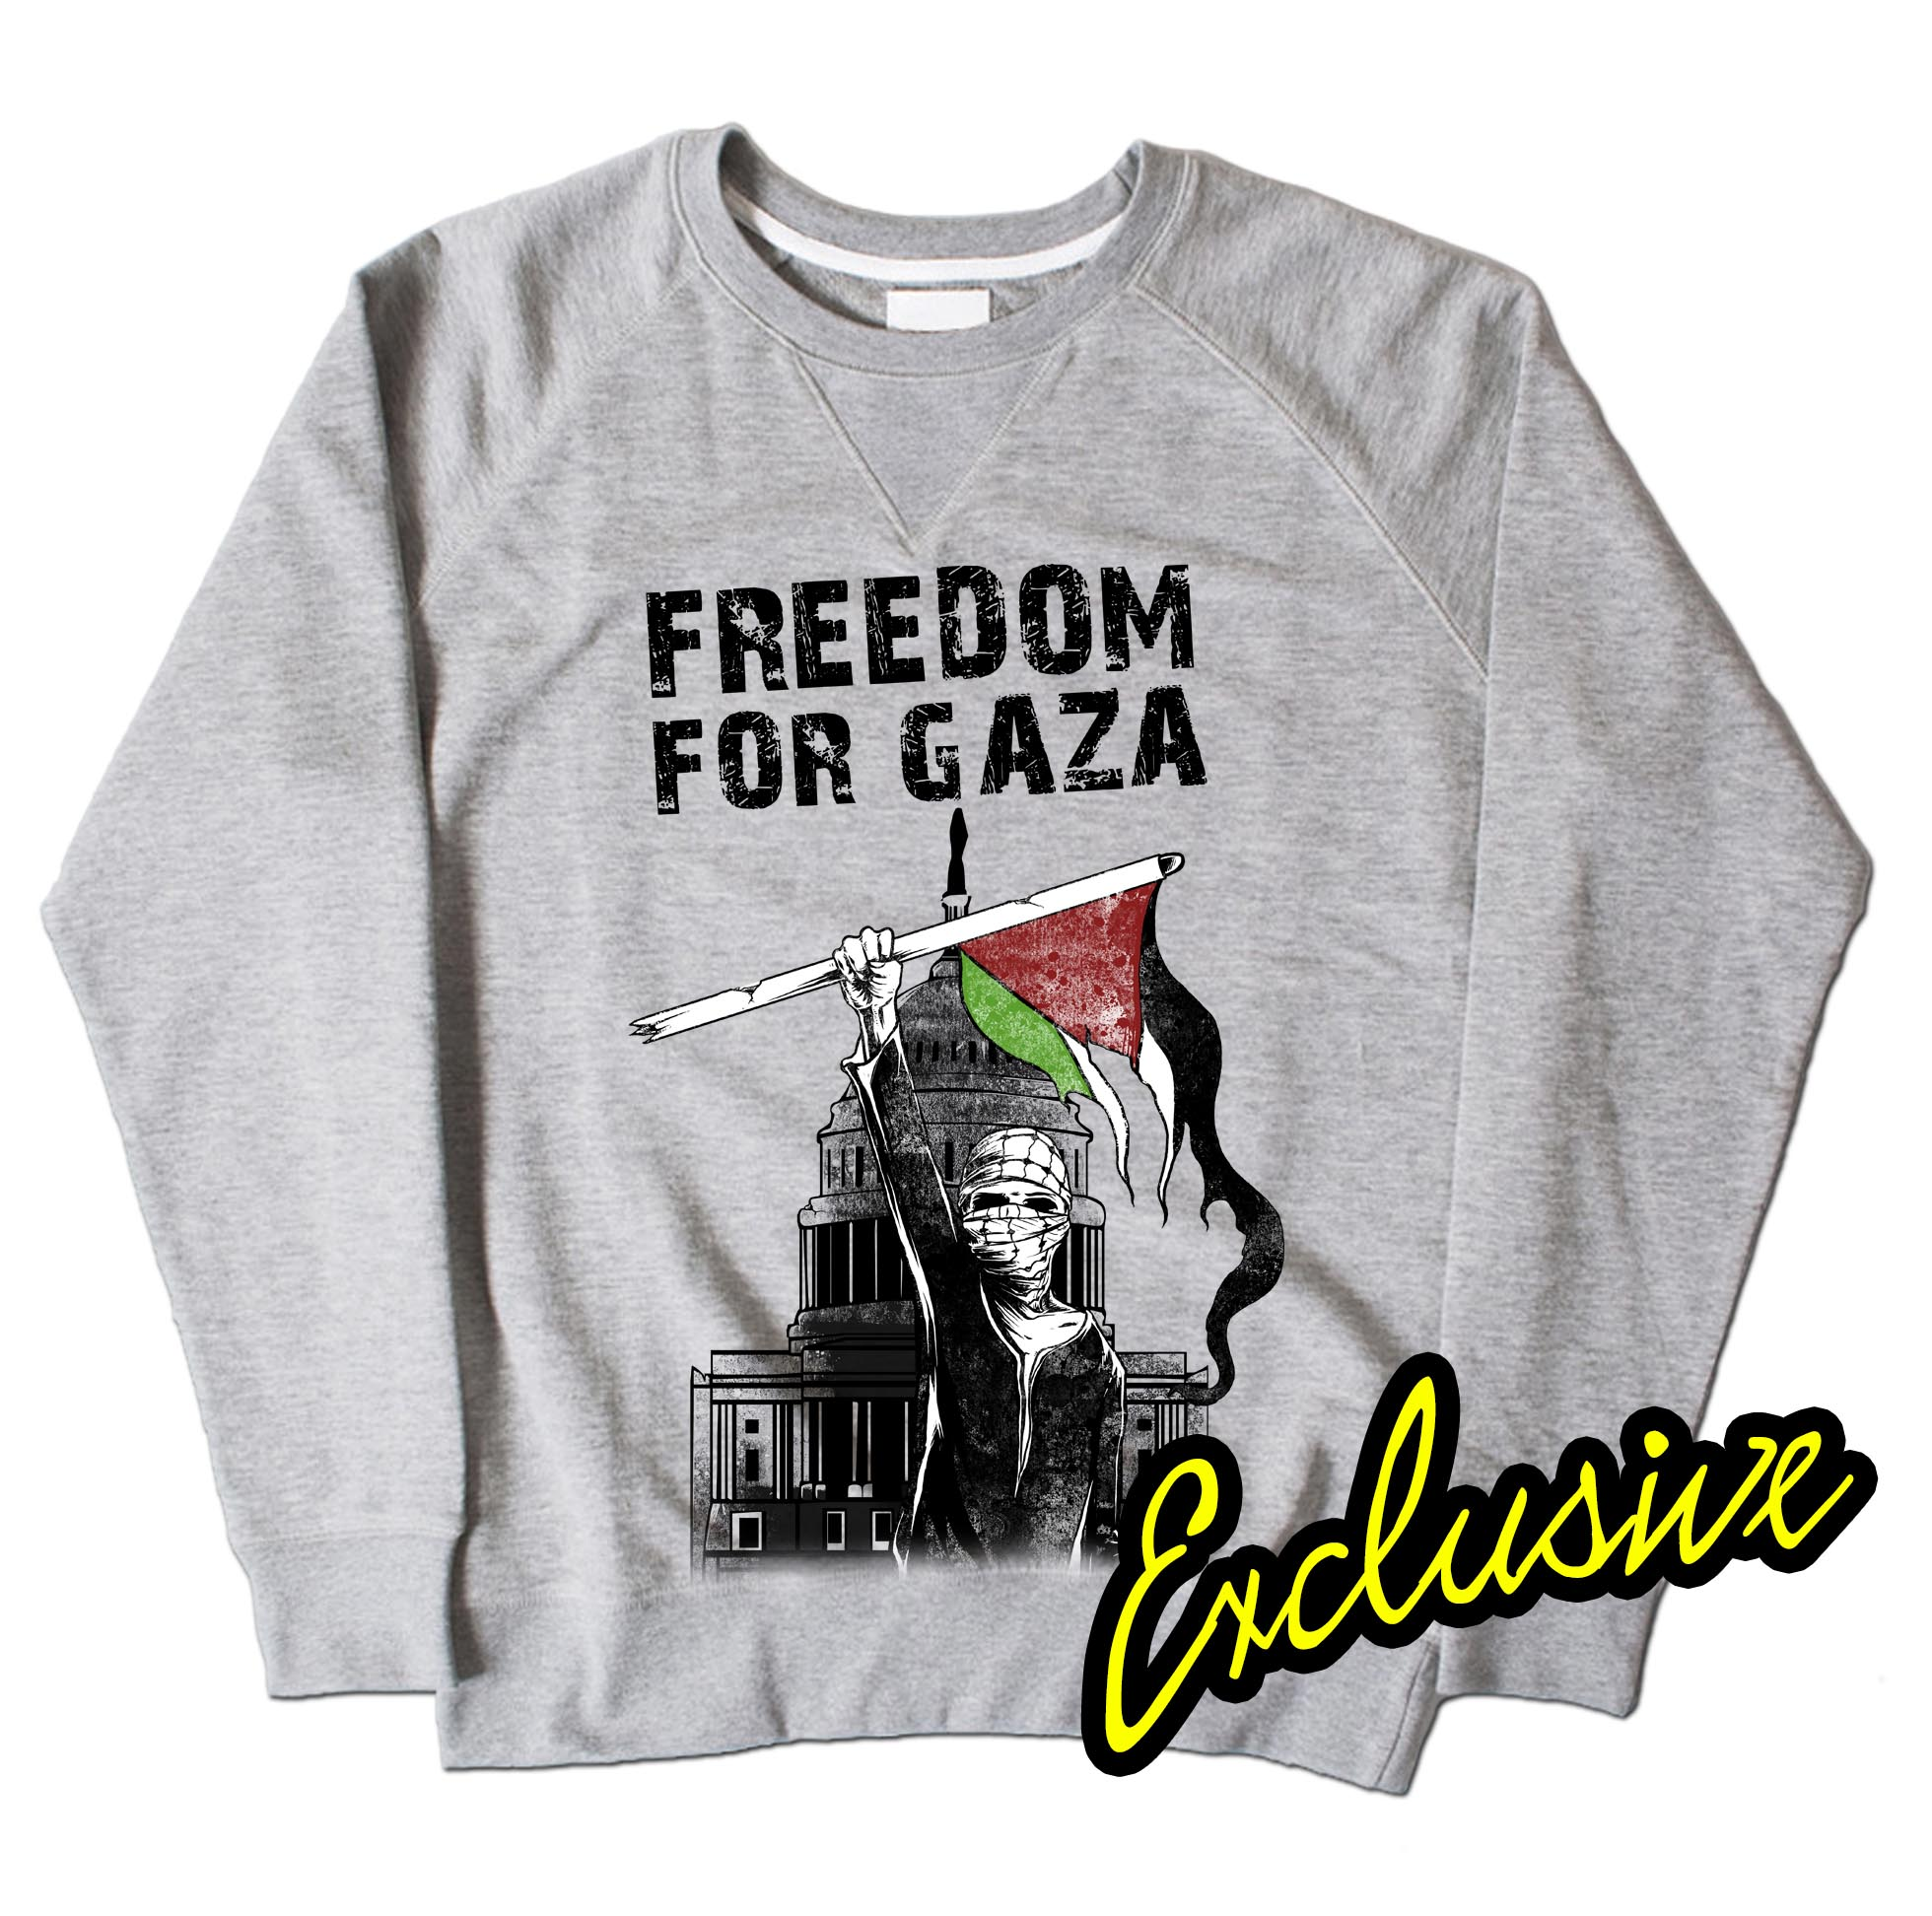 Exclusive Freedom Fighter - Grey